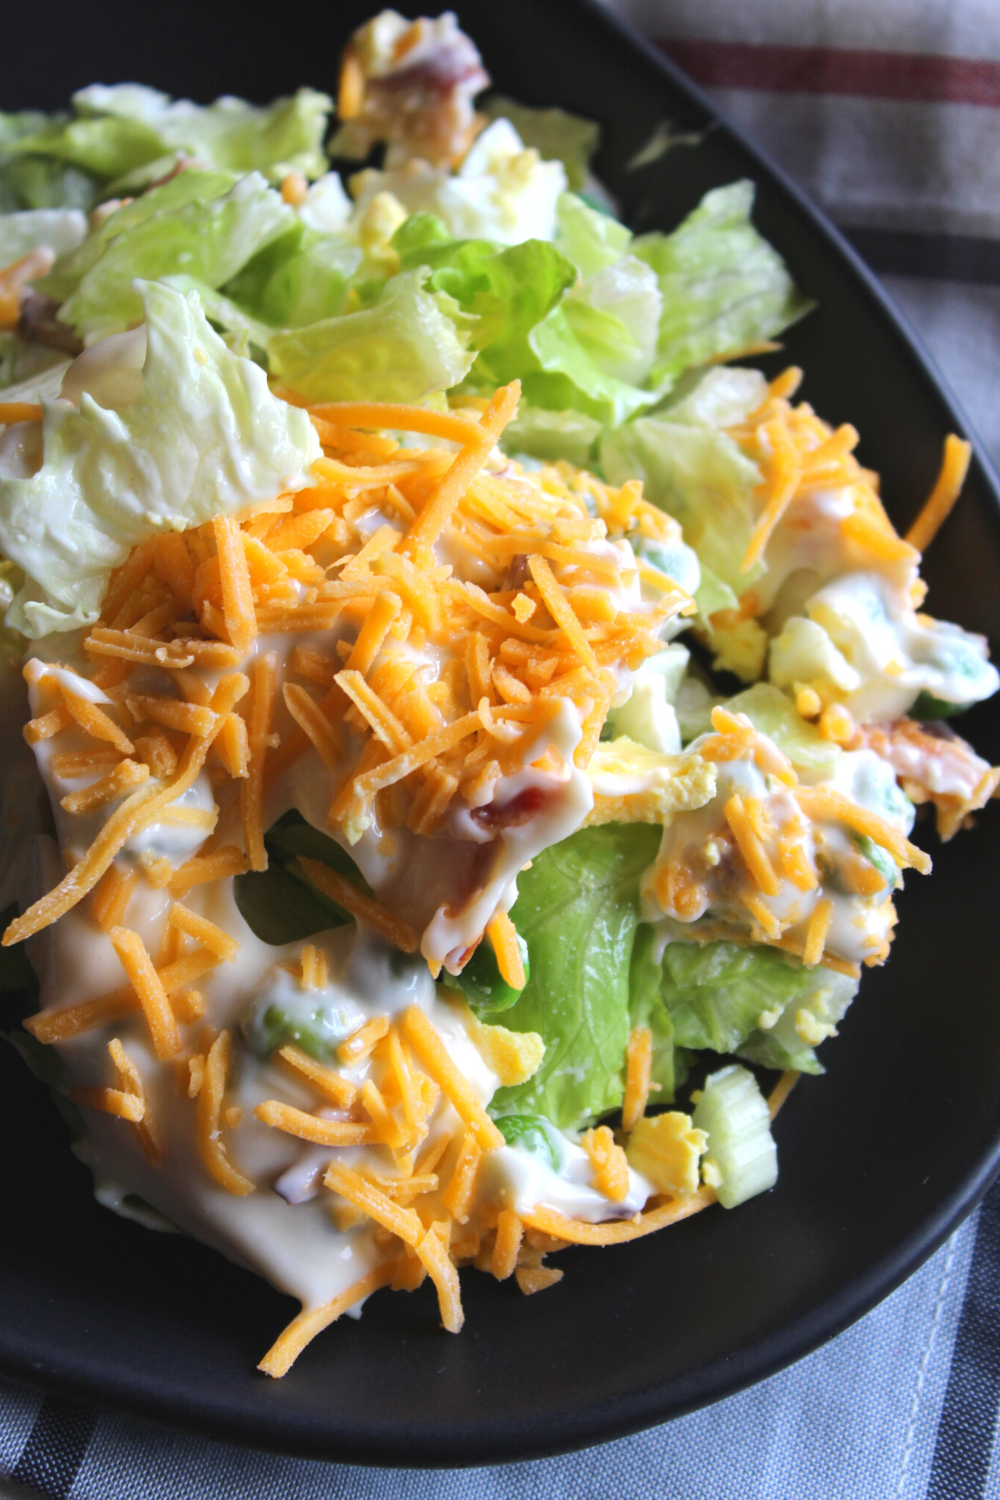 Classic 7 Layer Salad Recipe Easy Seven Layer Salad Recipe Traditional Pioneer Woman Recipe Potluck Salad Recipe 7 Layer Salad Dressing Mayo Recipe My Farmhouse Table